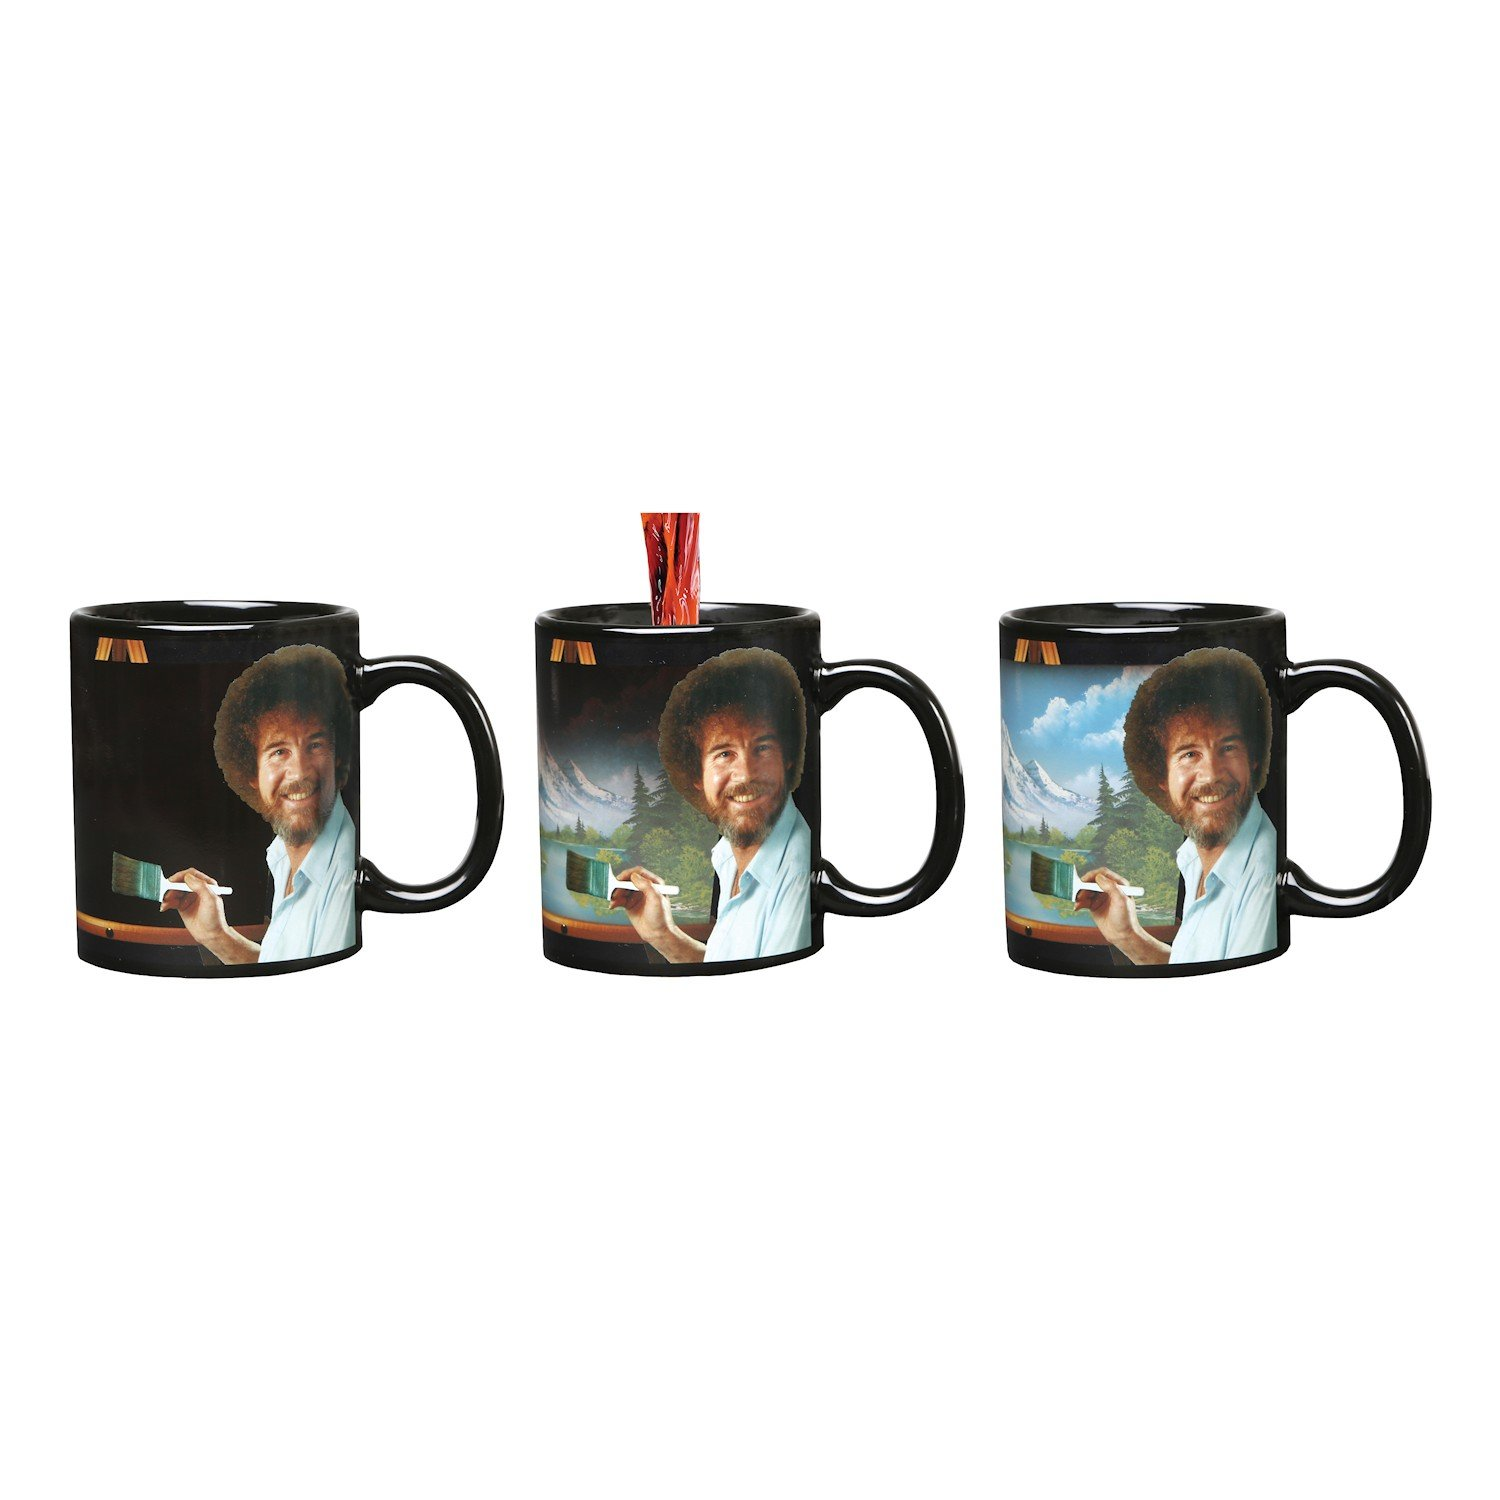 WHAT ON EARTH Bob Ross Heat Changing Mug - Ceramic 11 oz - See Painting Color Hot Liquids